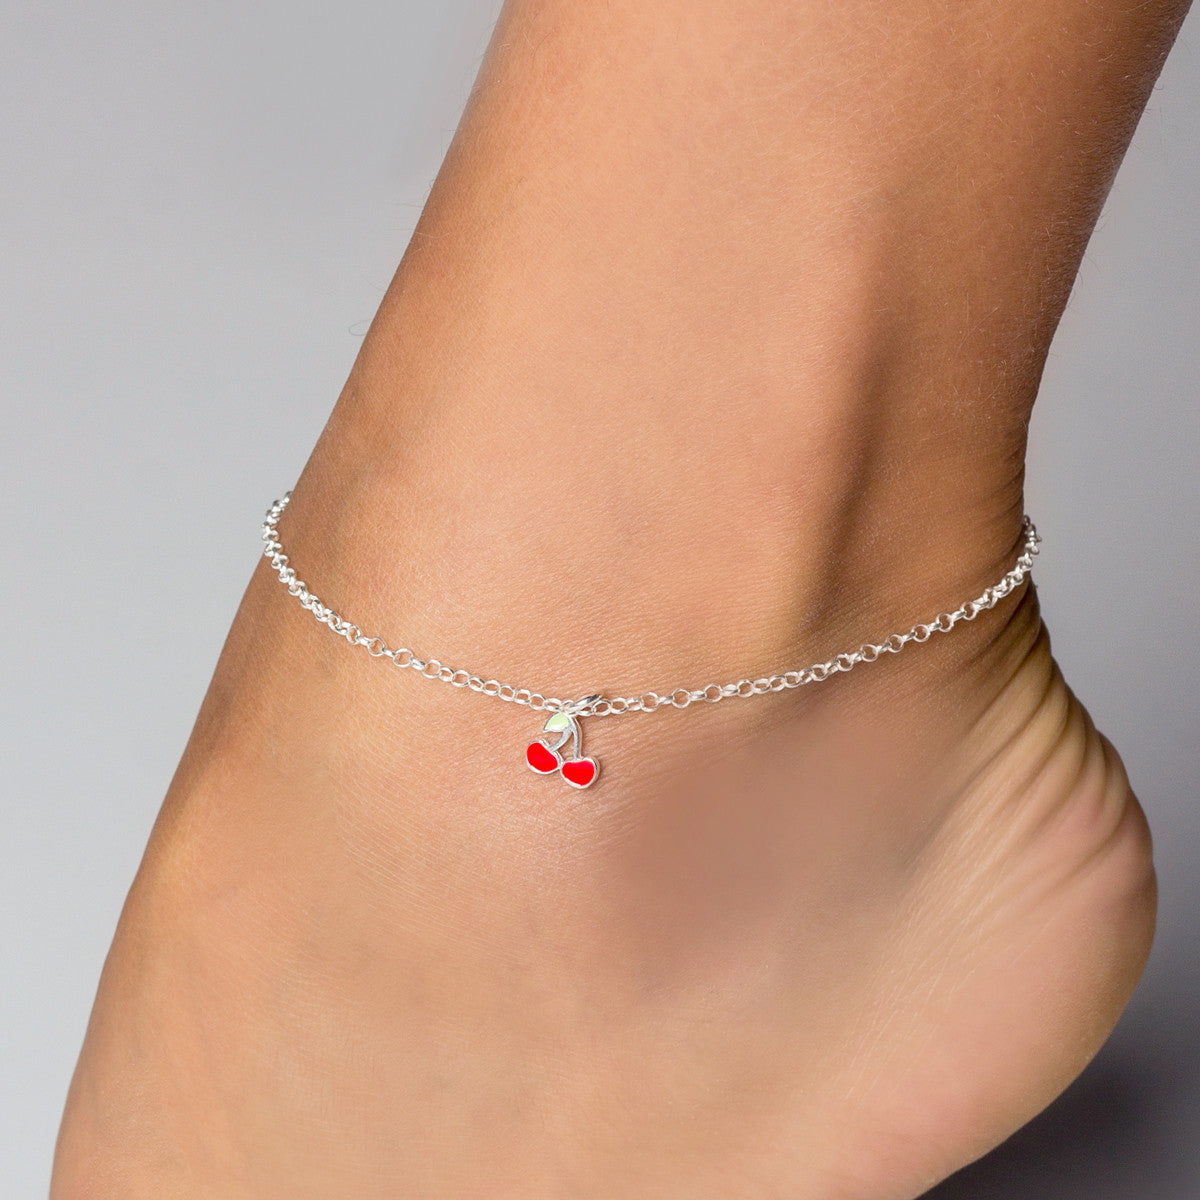 inches silver anklet heart sterling bling bell charms jewelry jingle gb inch az